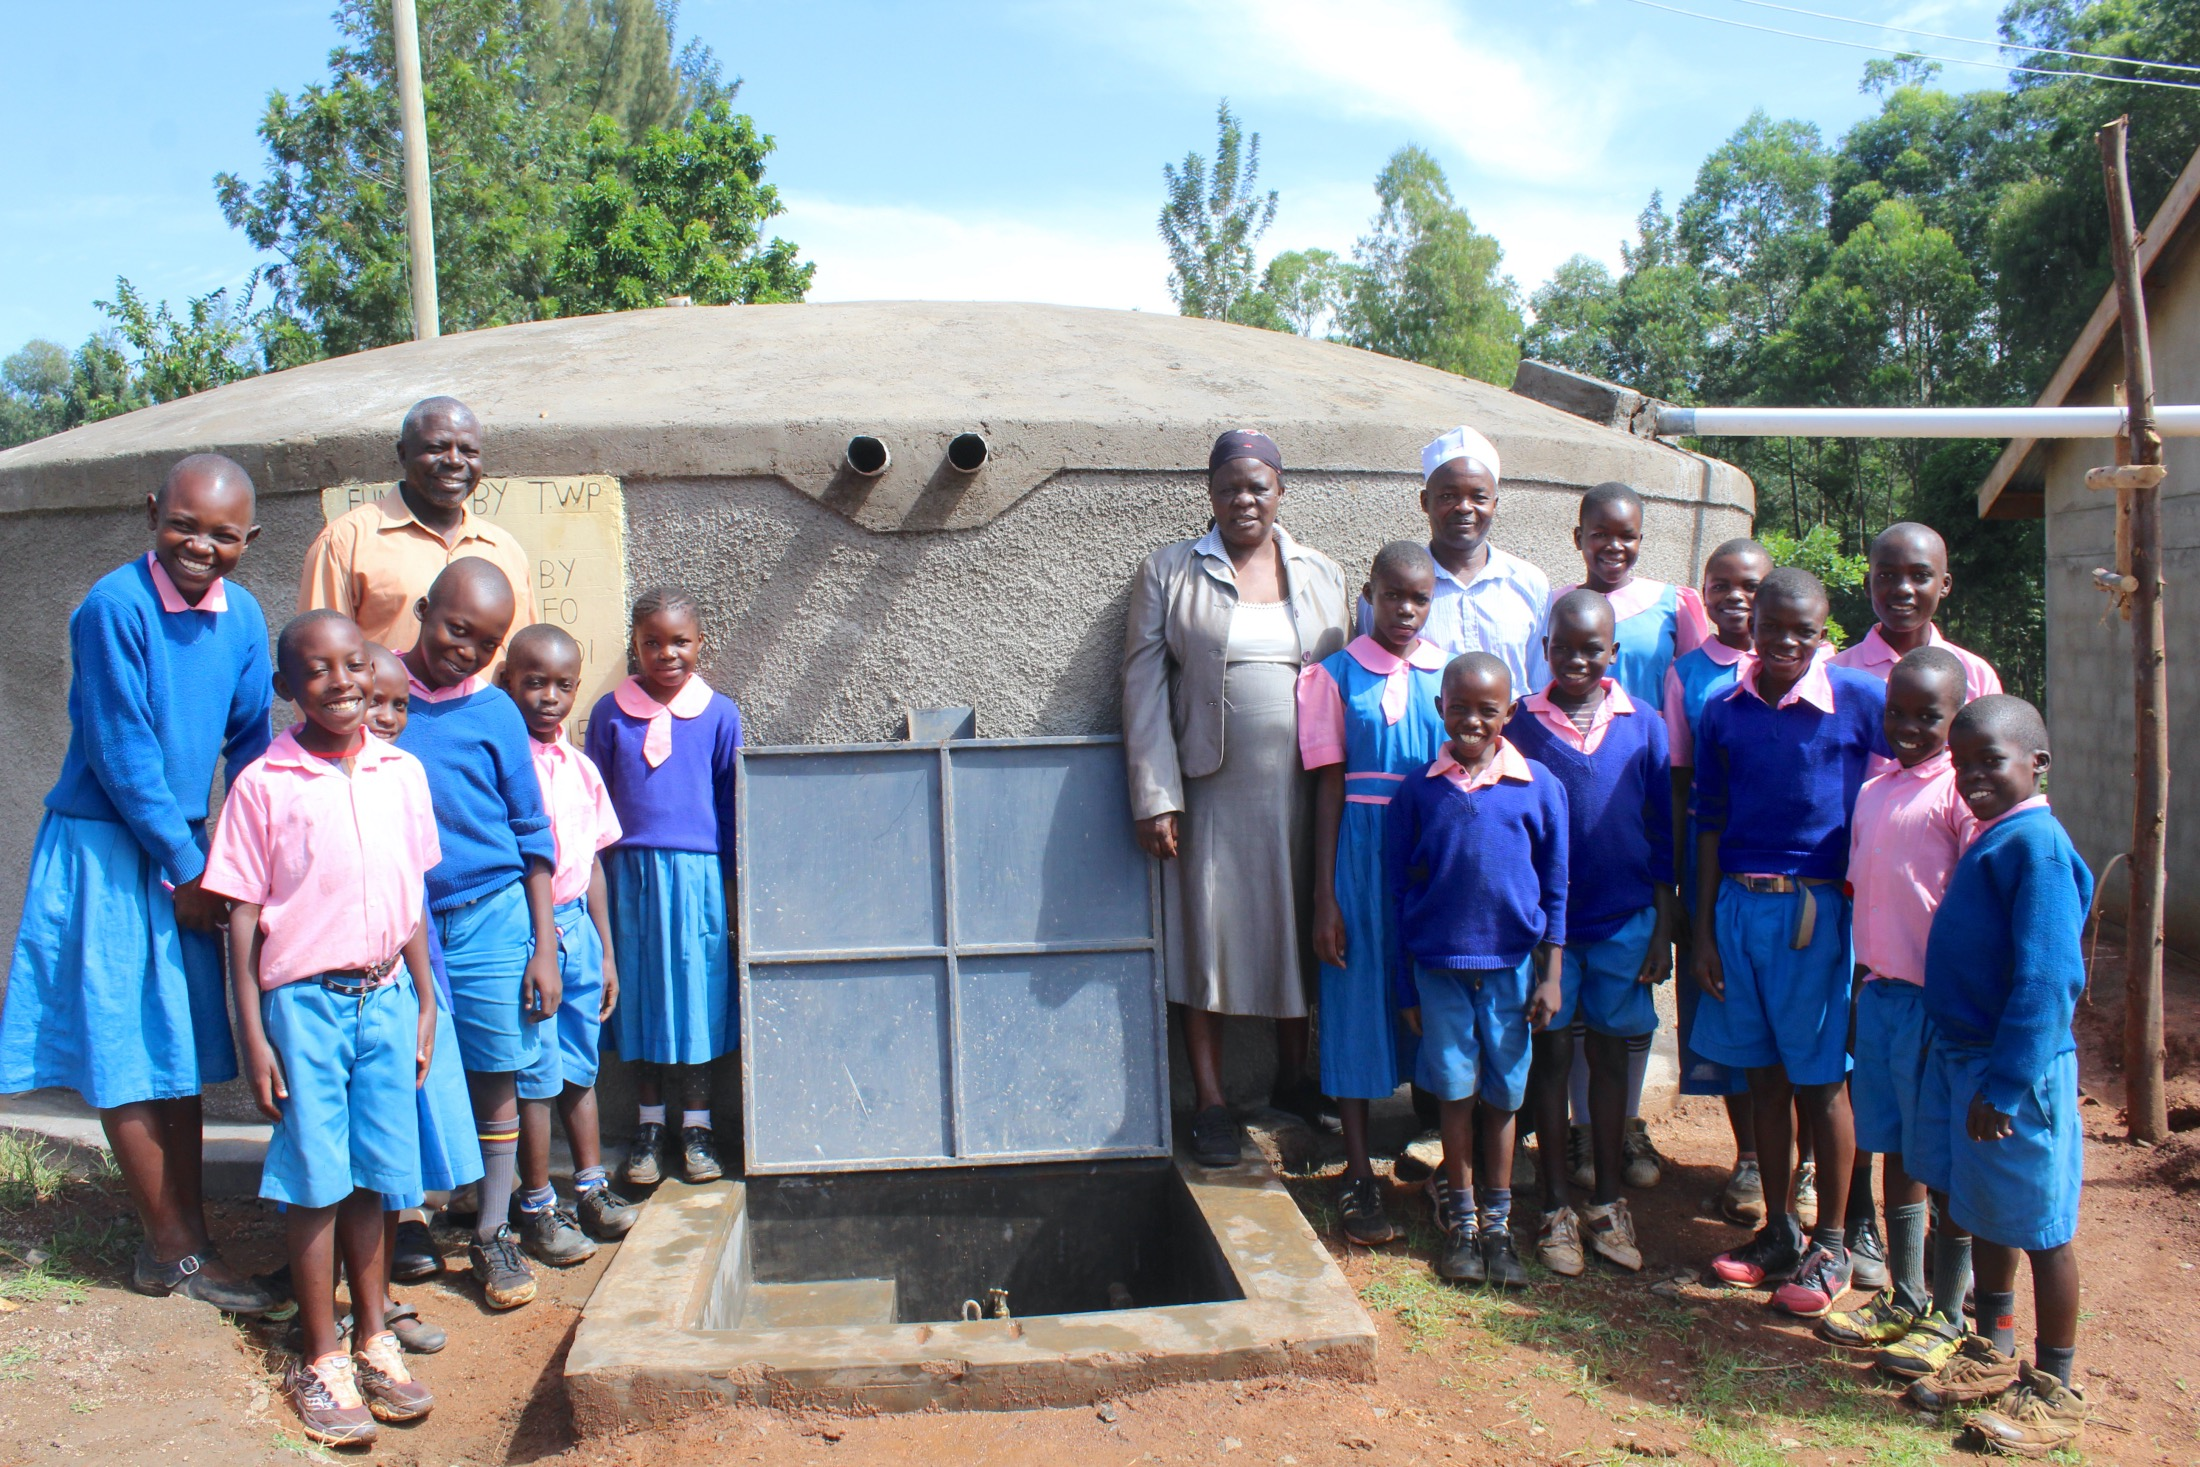 The Water Project : 36-kenya20115-pupils-teachers-and-staff-pose-at-rain-tank-7